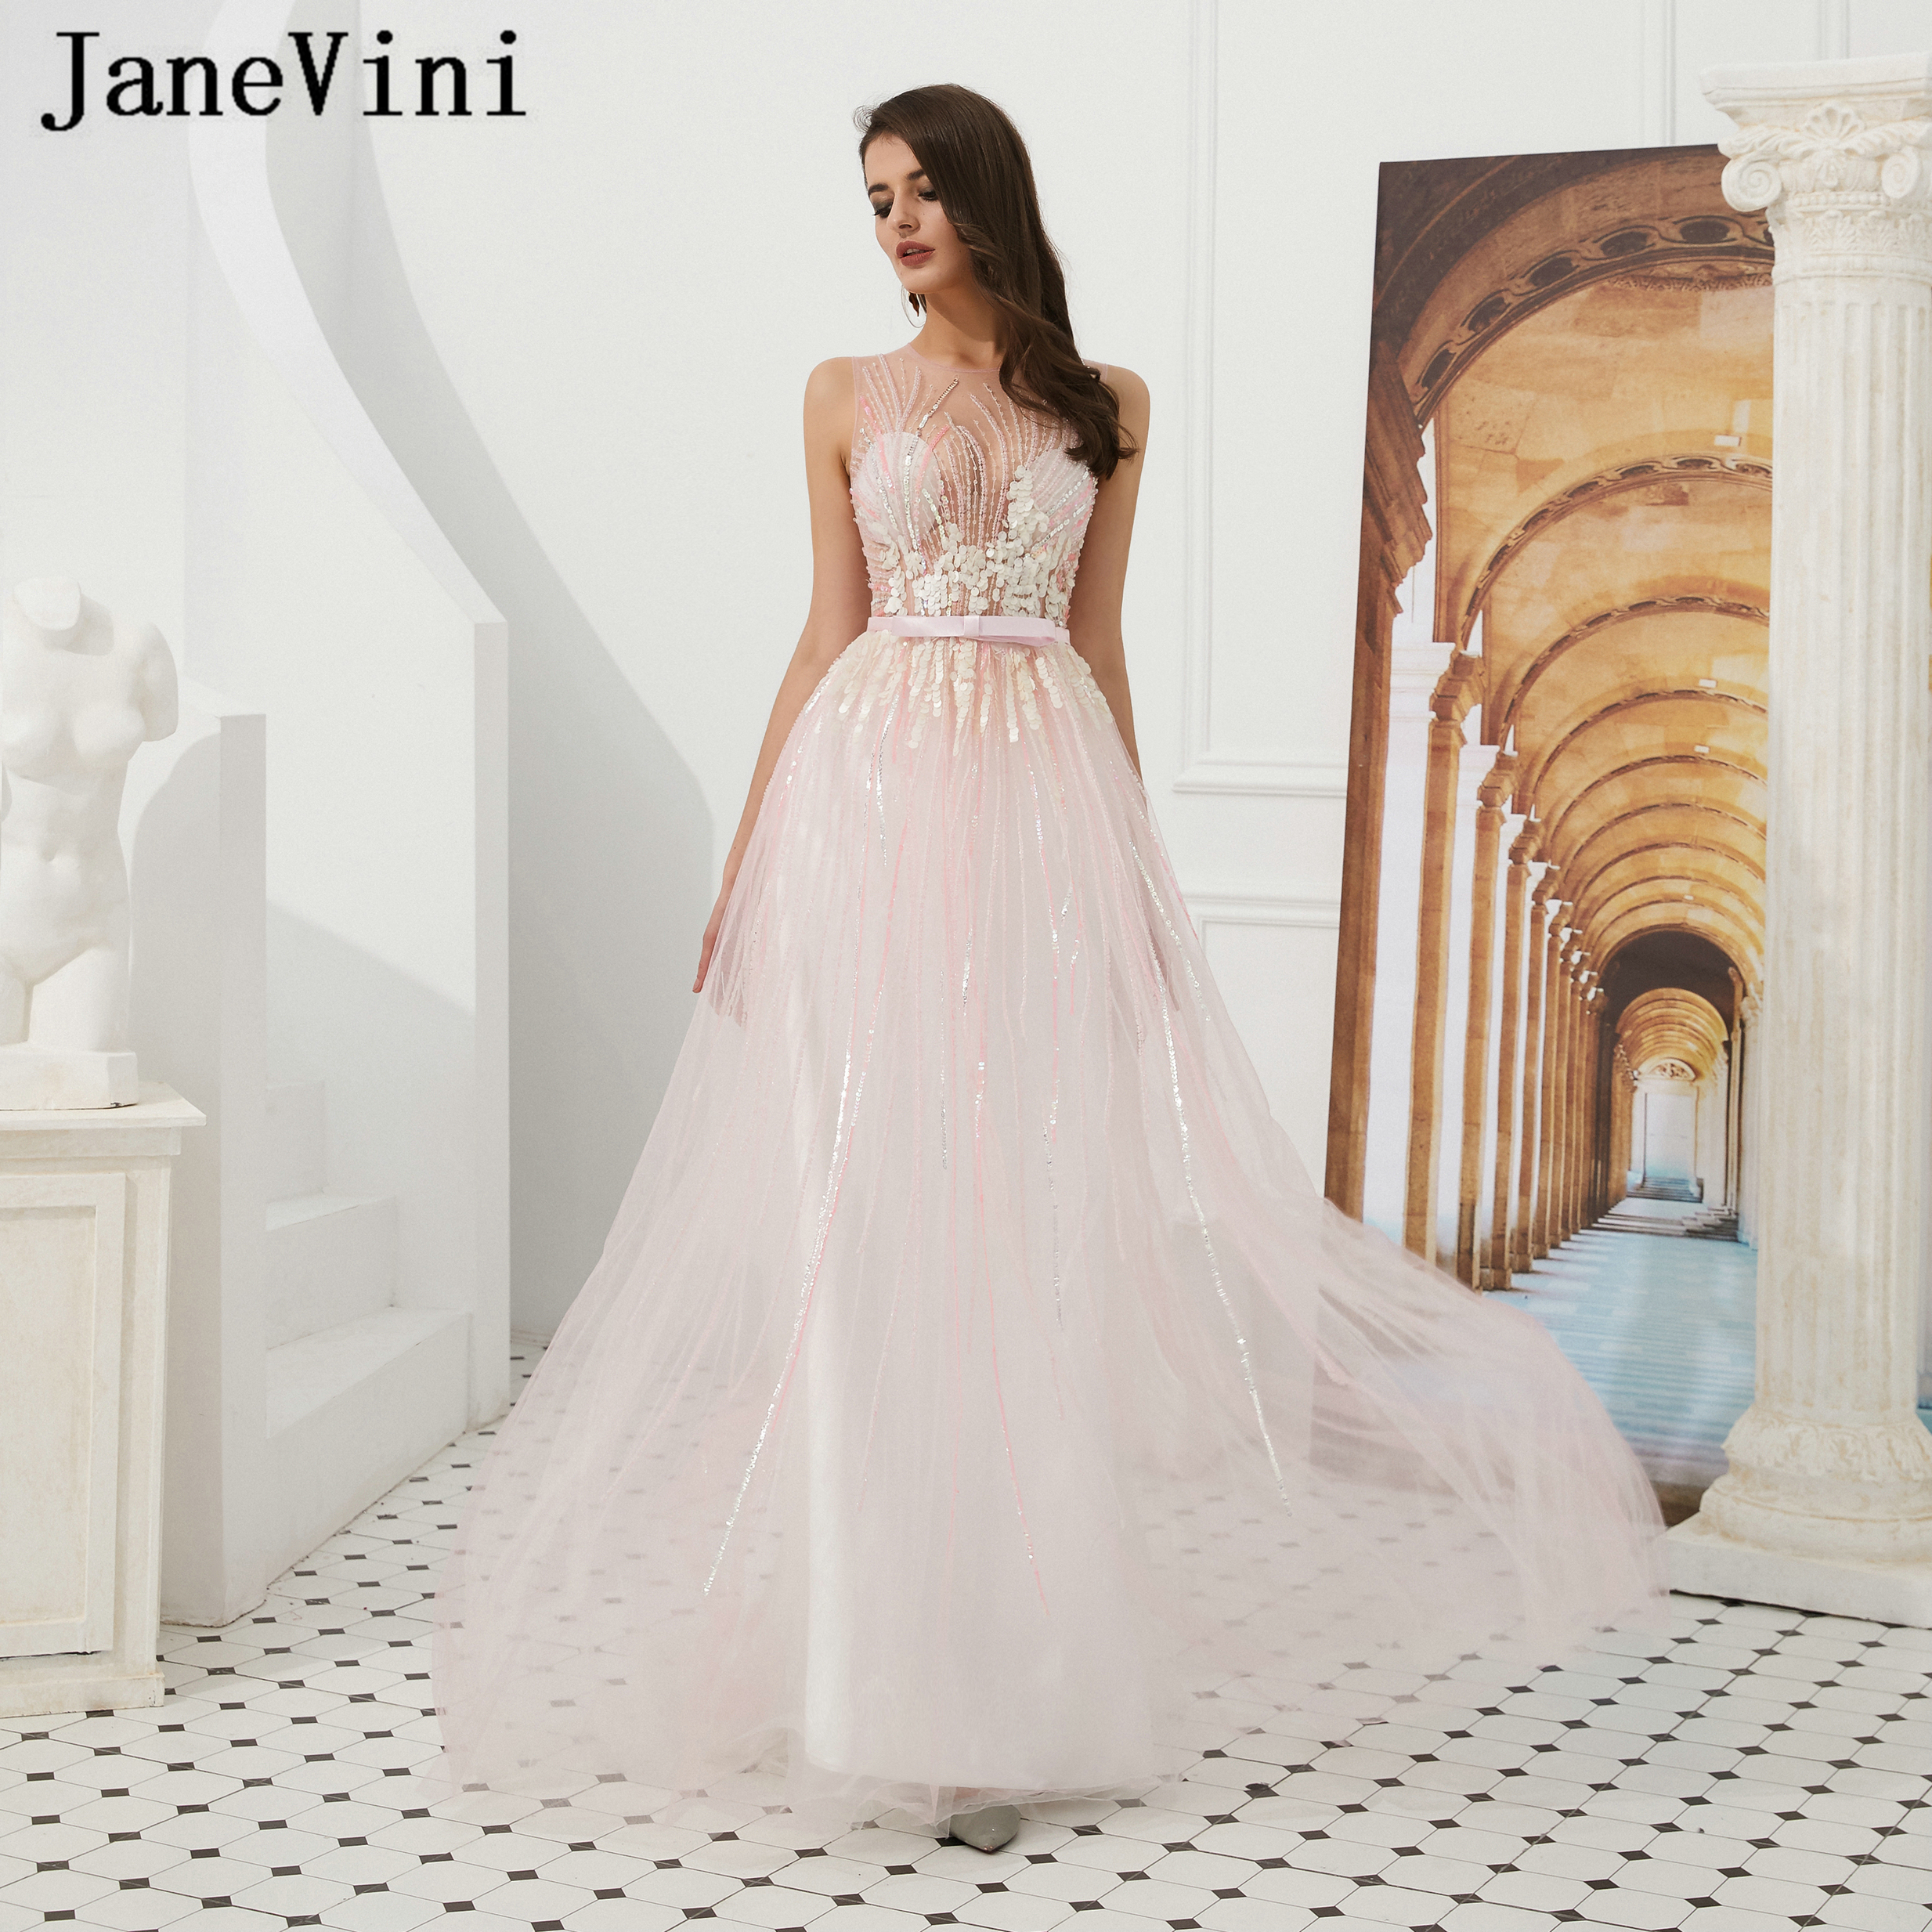 JaneVini Elegant A Line Light Pink Long   Prom     Dresses   2019 Sleeveless Sequins Beaded Illusion Back Tulle Women Formal Party Gowns